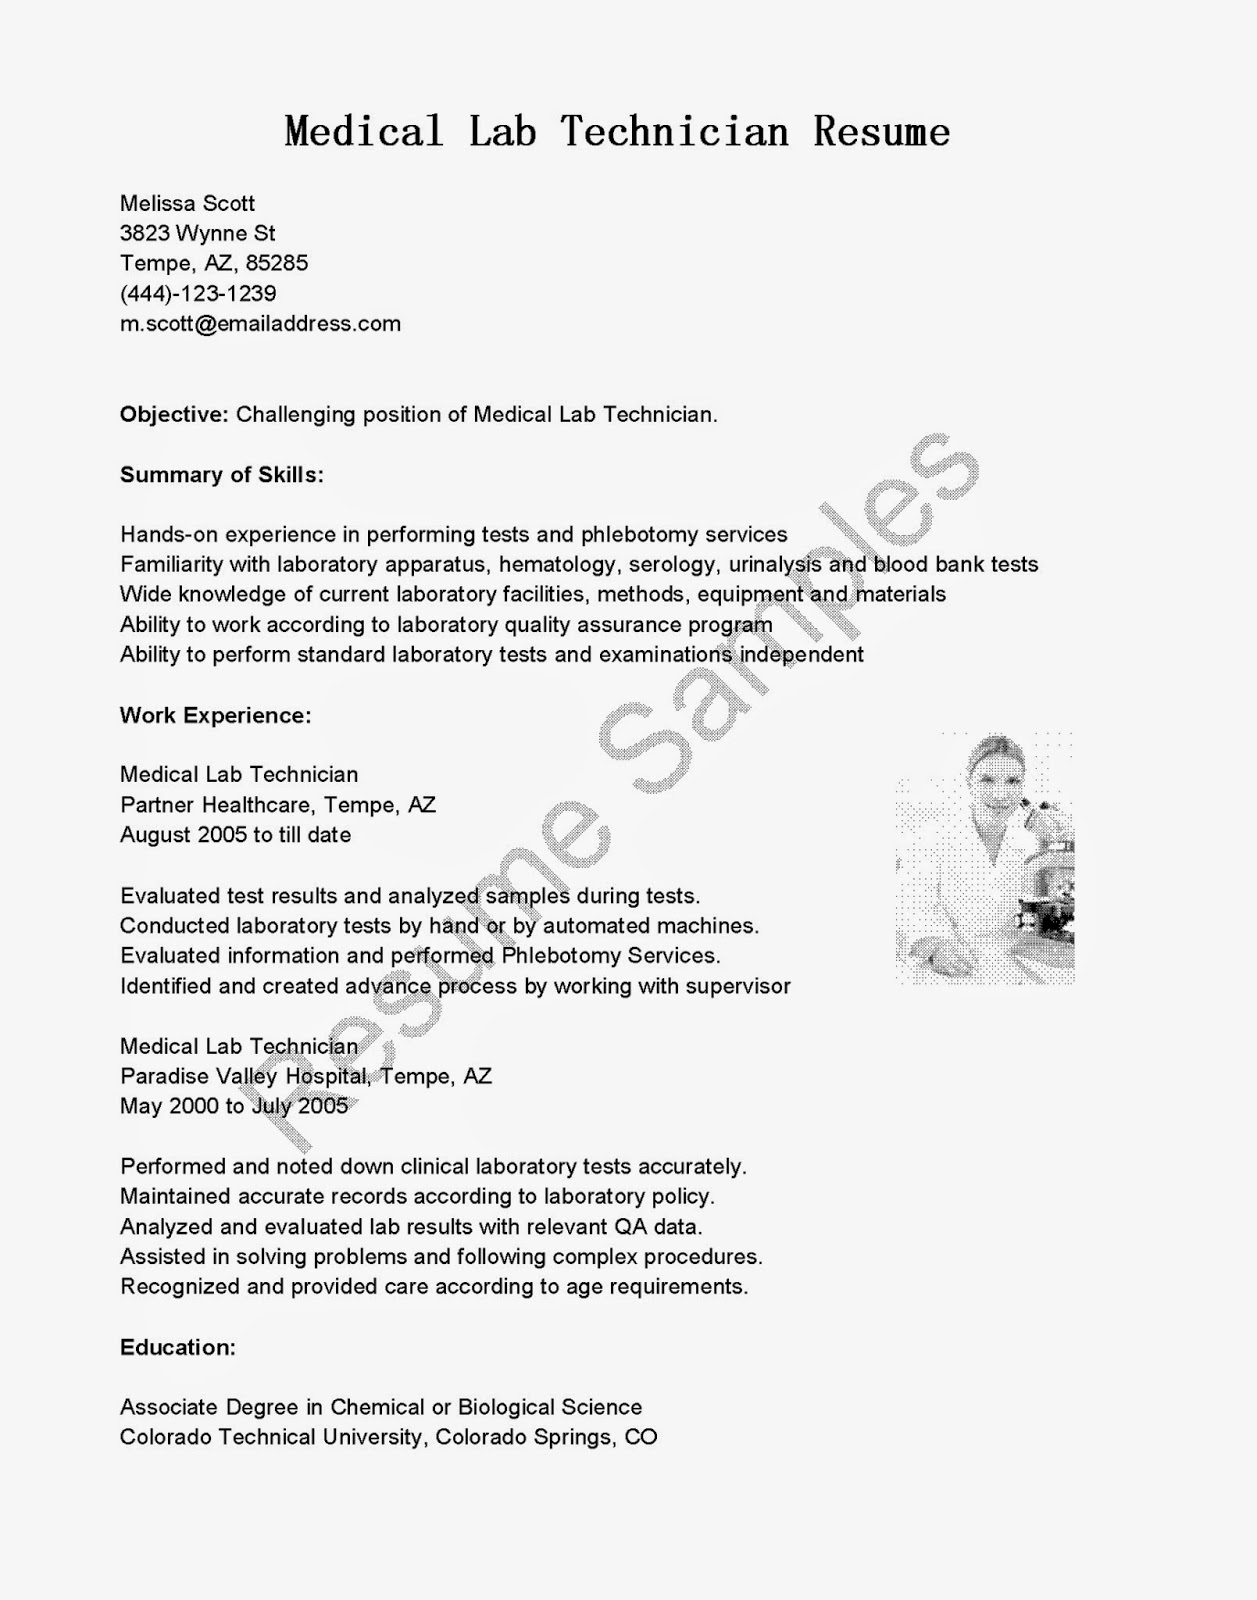 cv format for lab technician